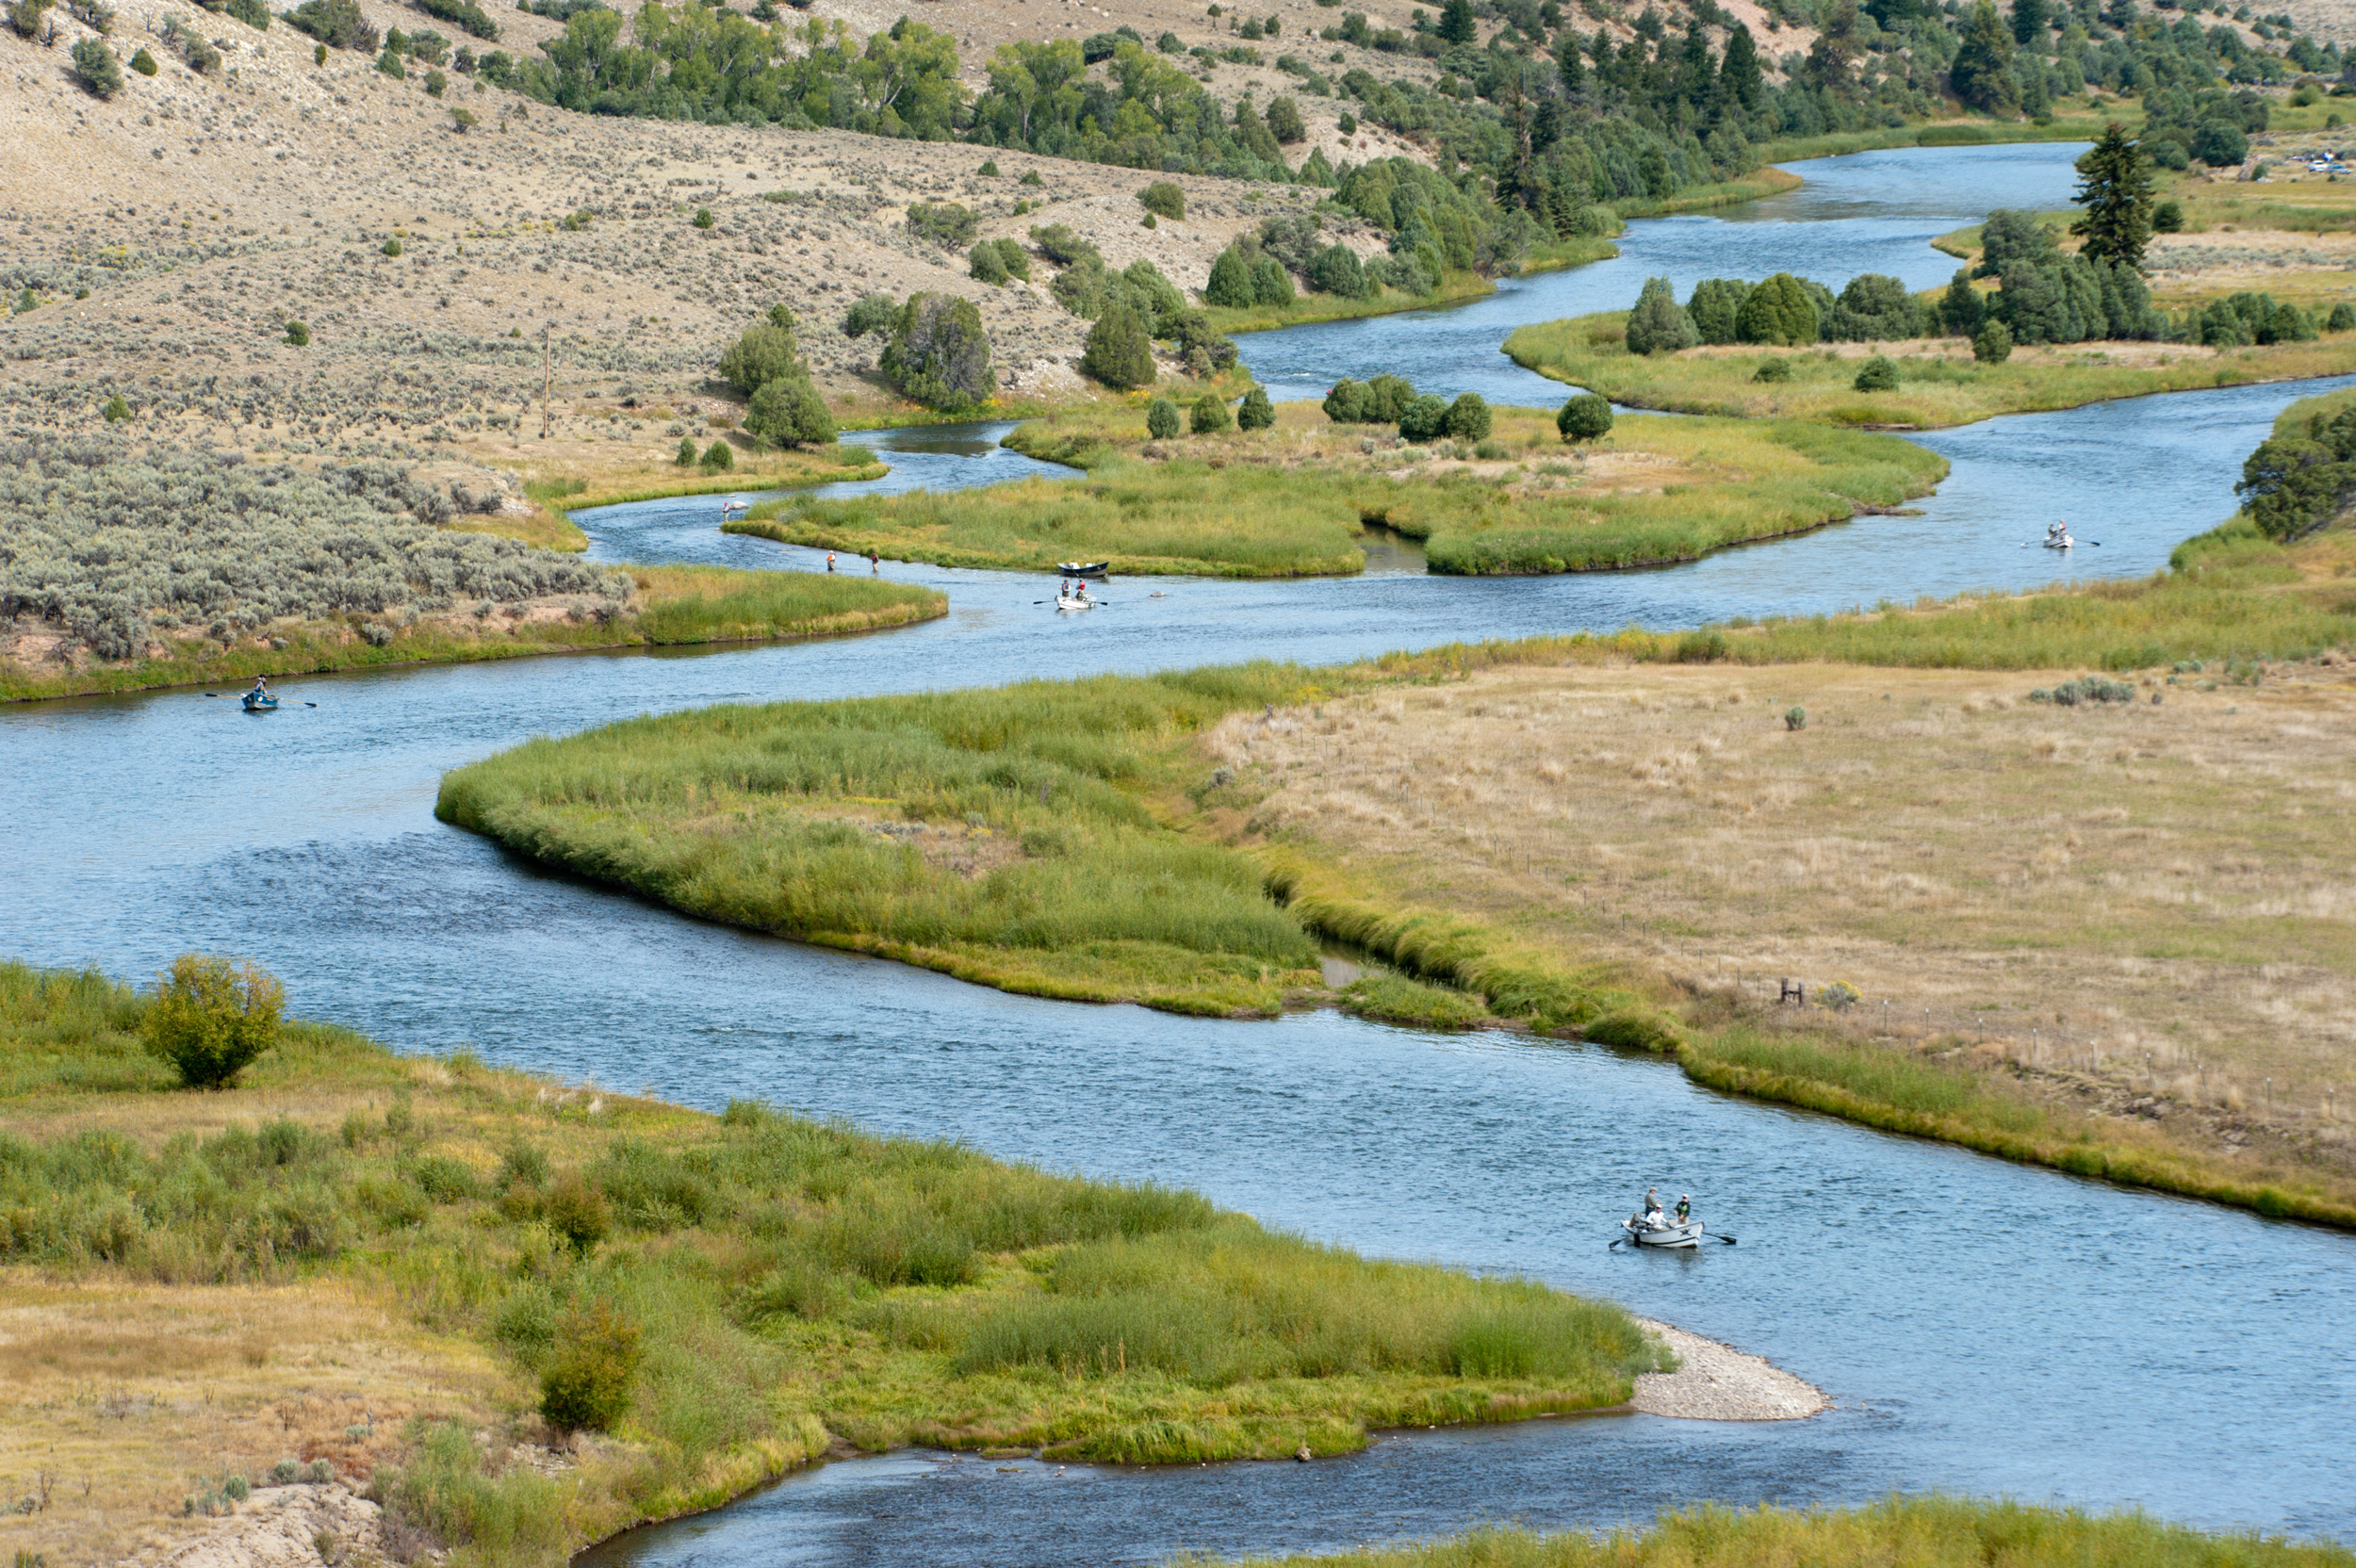 Water Wars: Upper Colorado River